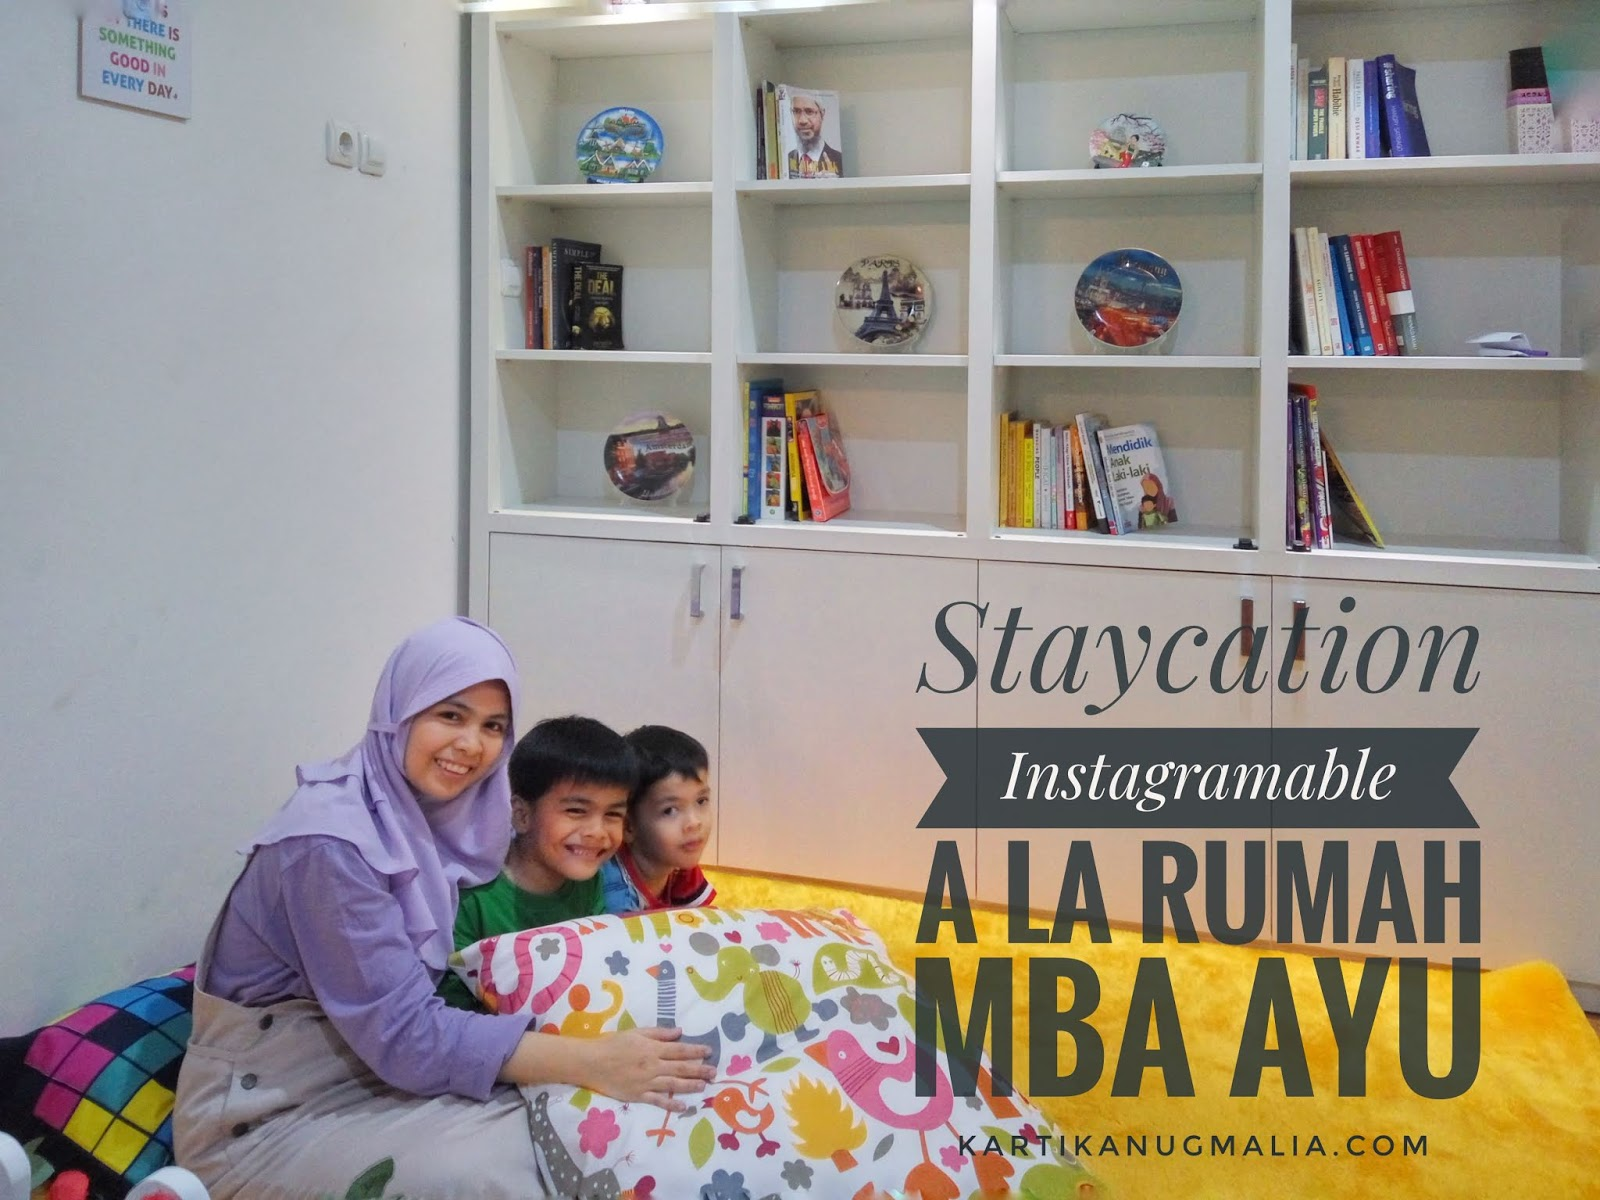 Rumah Mba Ayu Staycation Instagramable